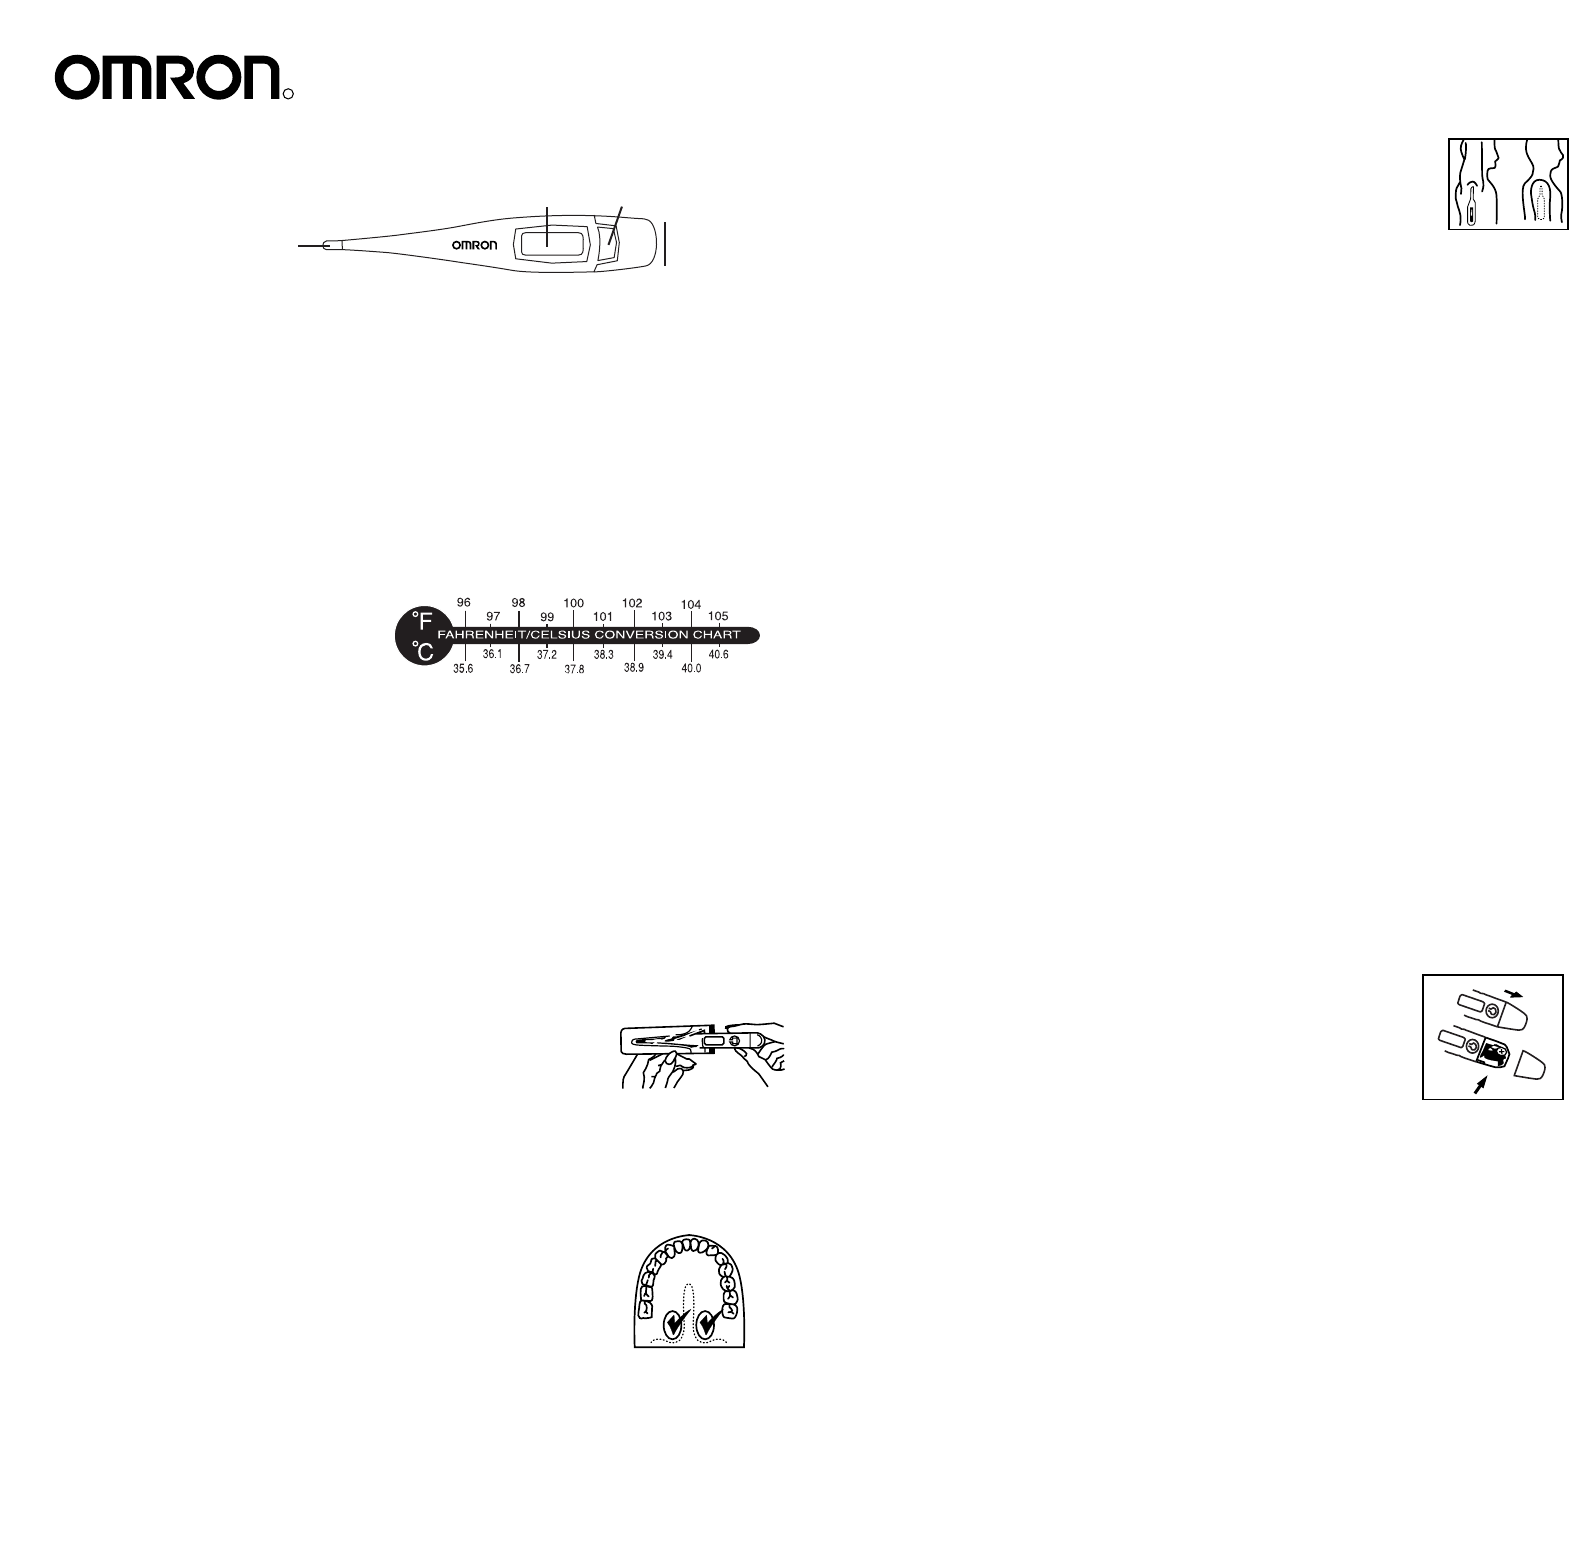 Omron healthcare thermometer mc 106 user guide manualsonline omron healthcare mc 106 thermometer user manual geenschuldenfo Image collections